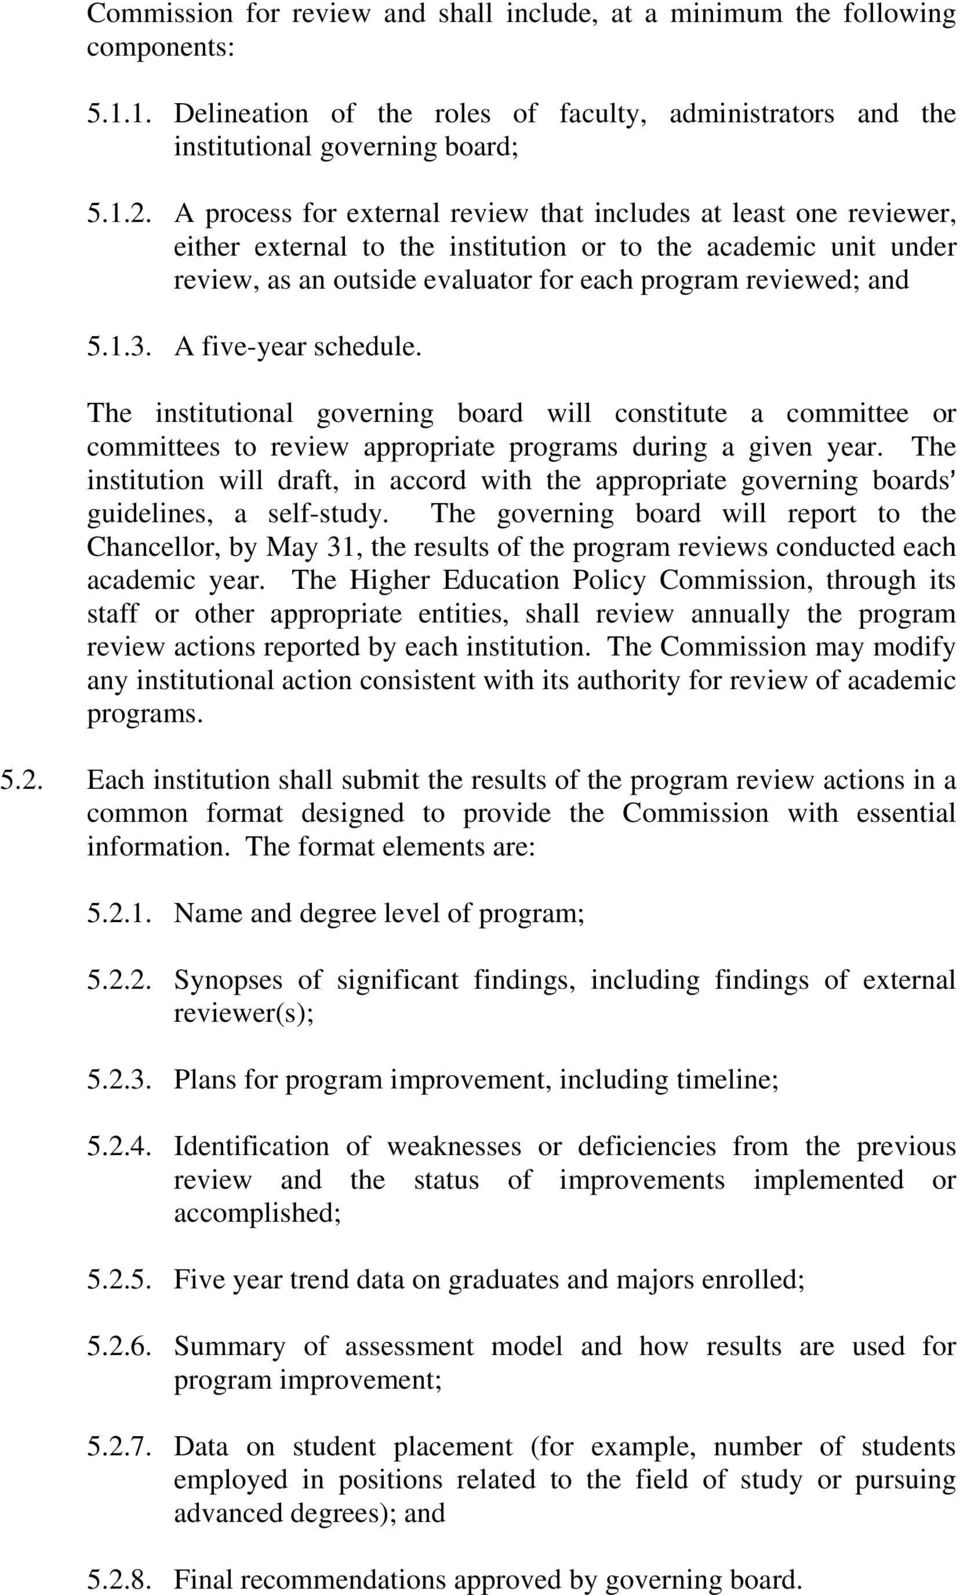 3. A five-year schedule. The institutional governing board will constitute a committee or committees to review appropriate programs during a given year.